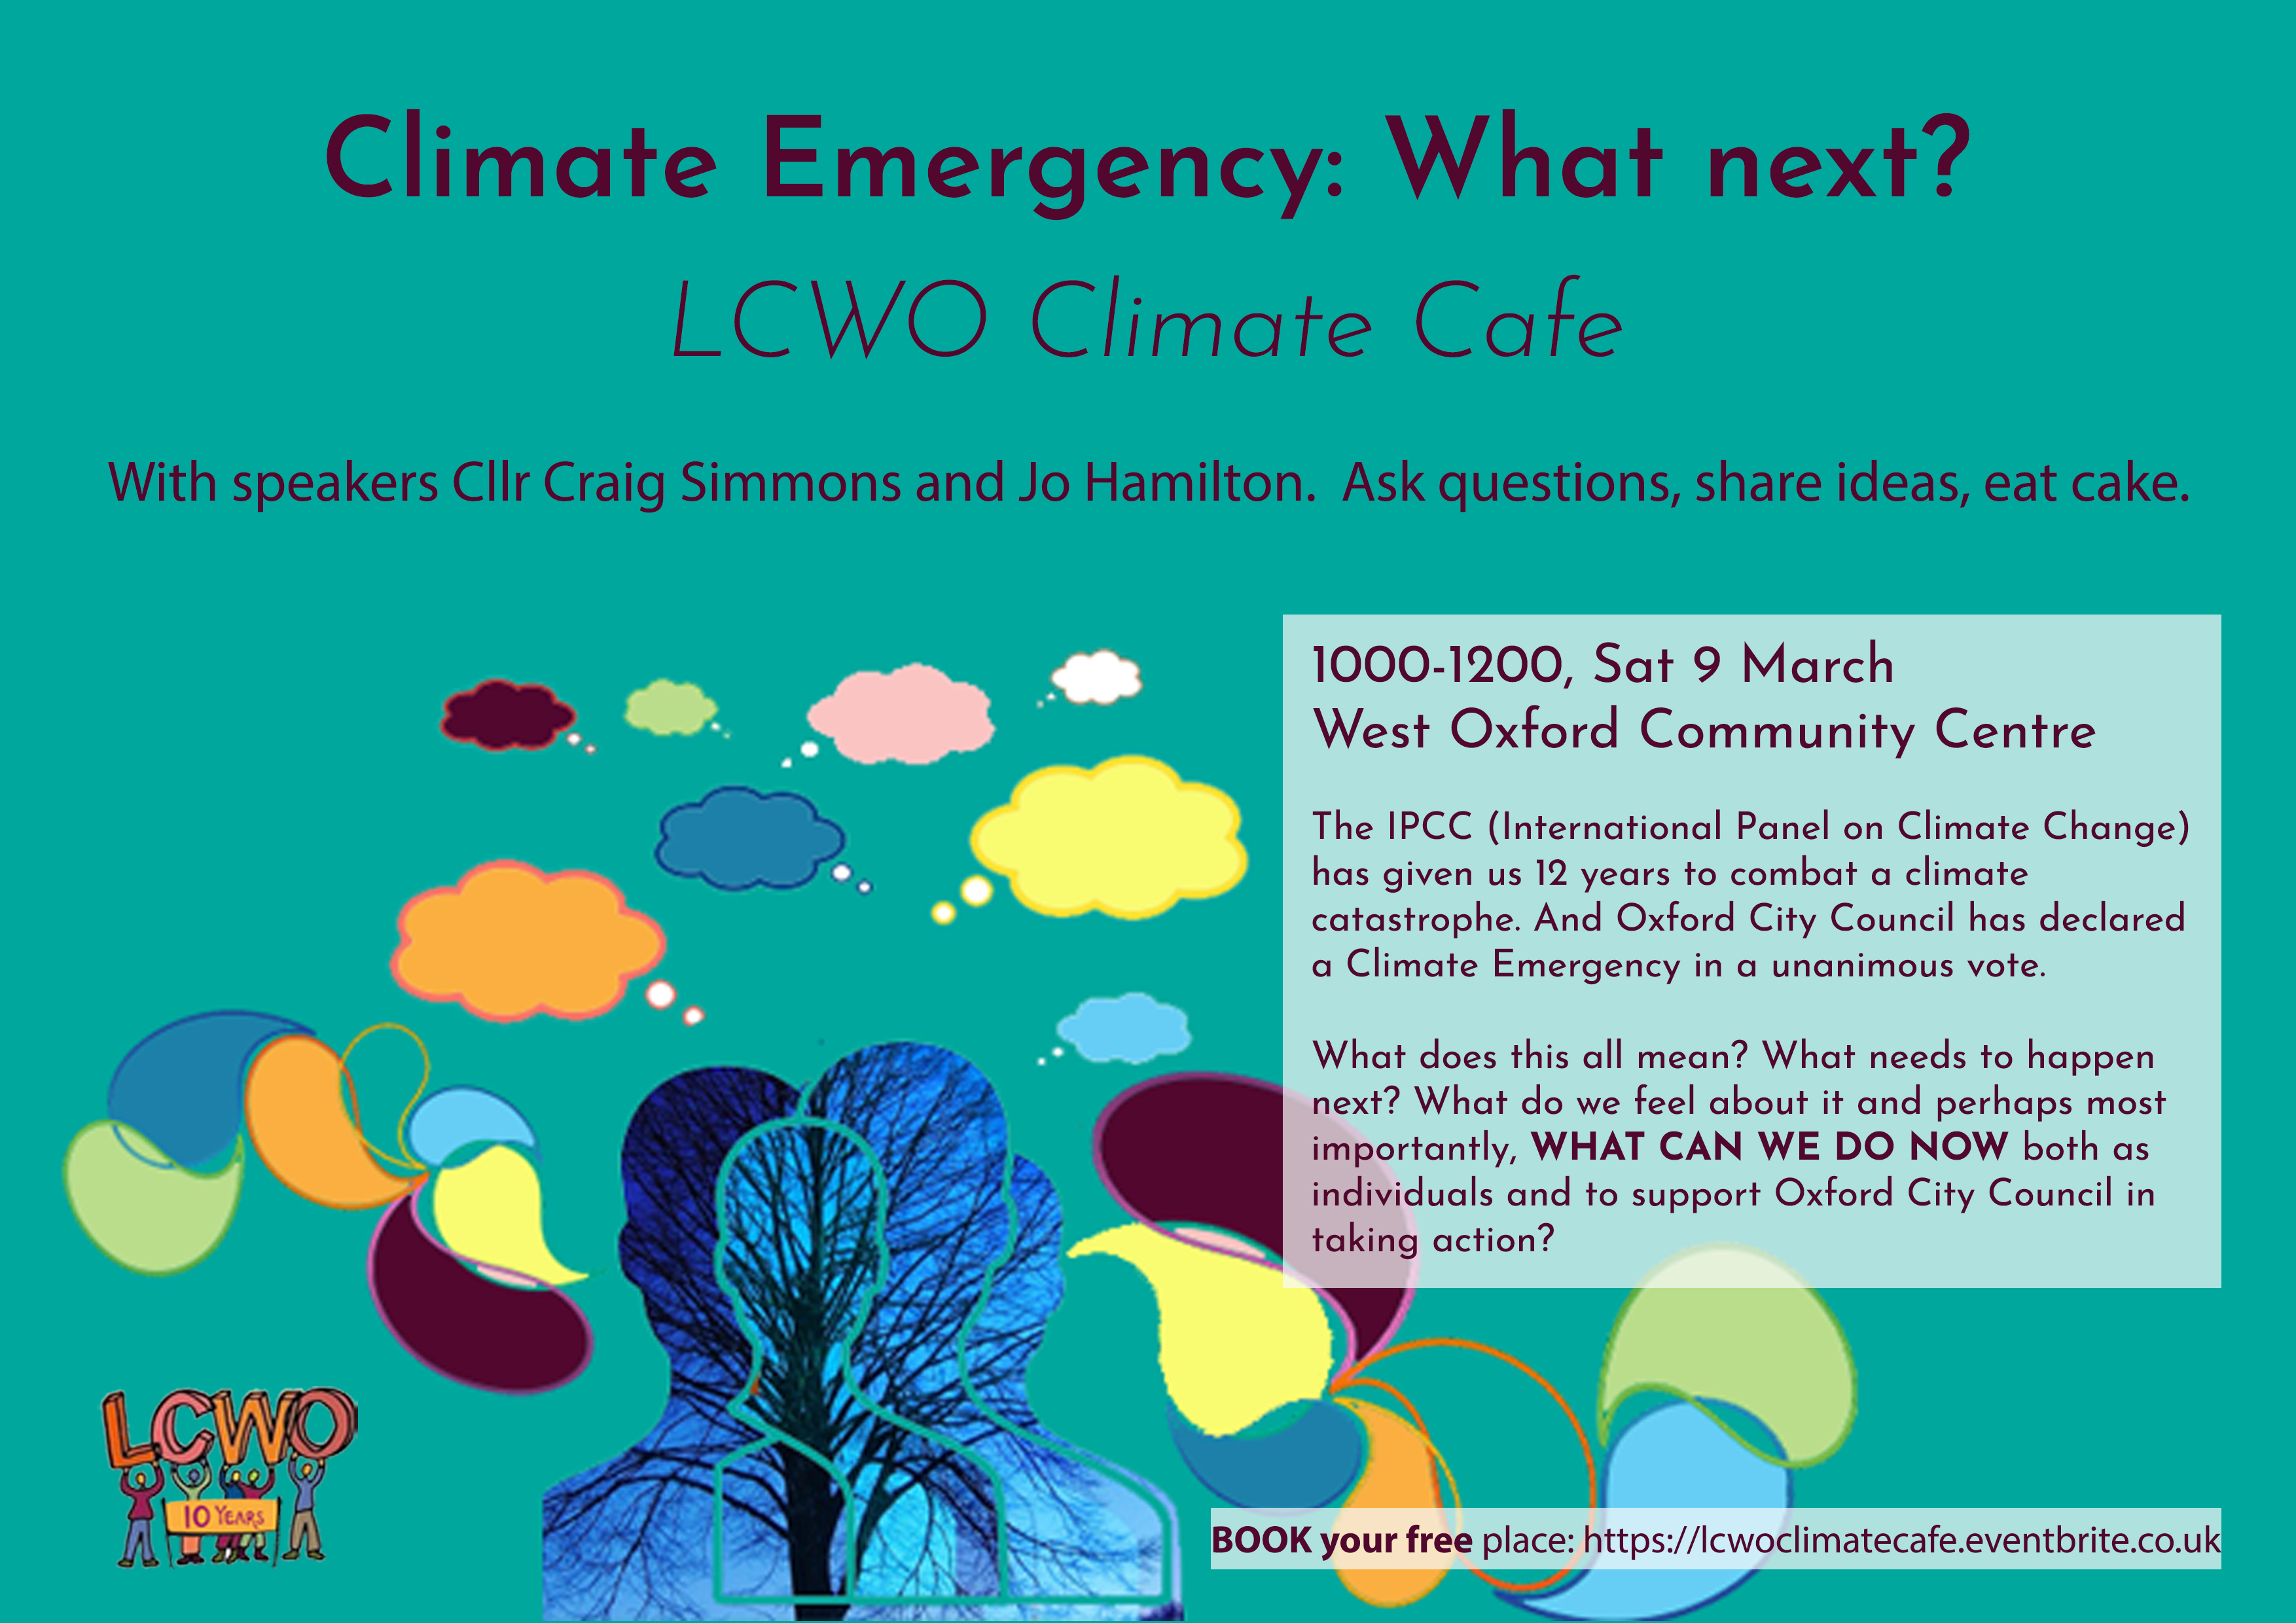 Notes from our first climate cafe with Cllr Craig Simmons and researcher activist Jo Hamilton